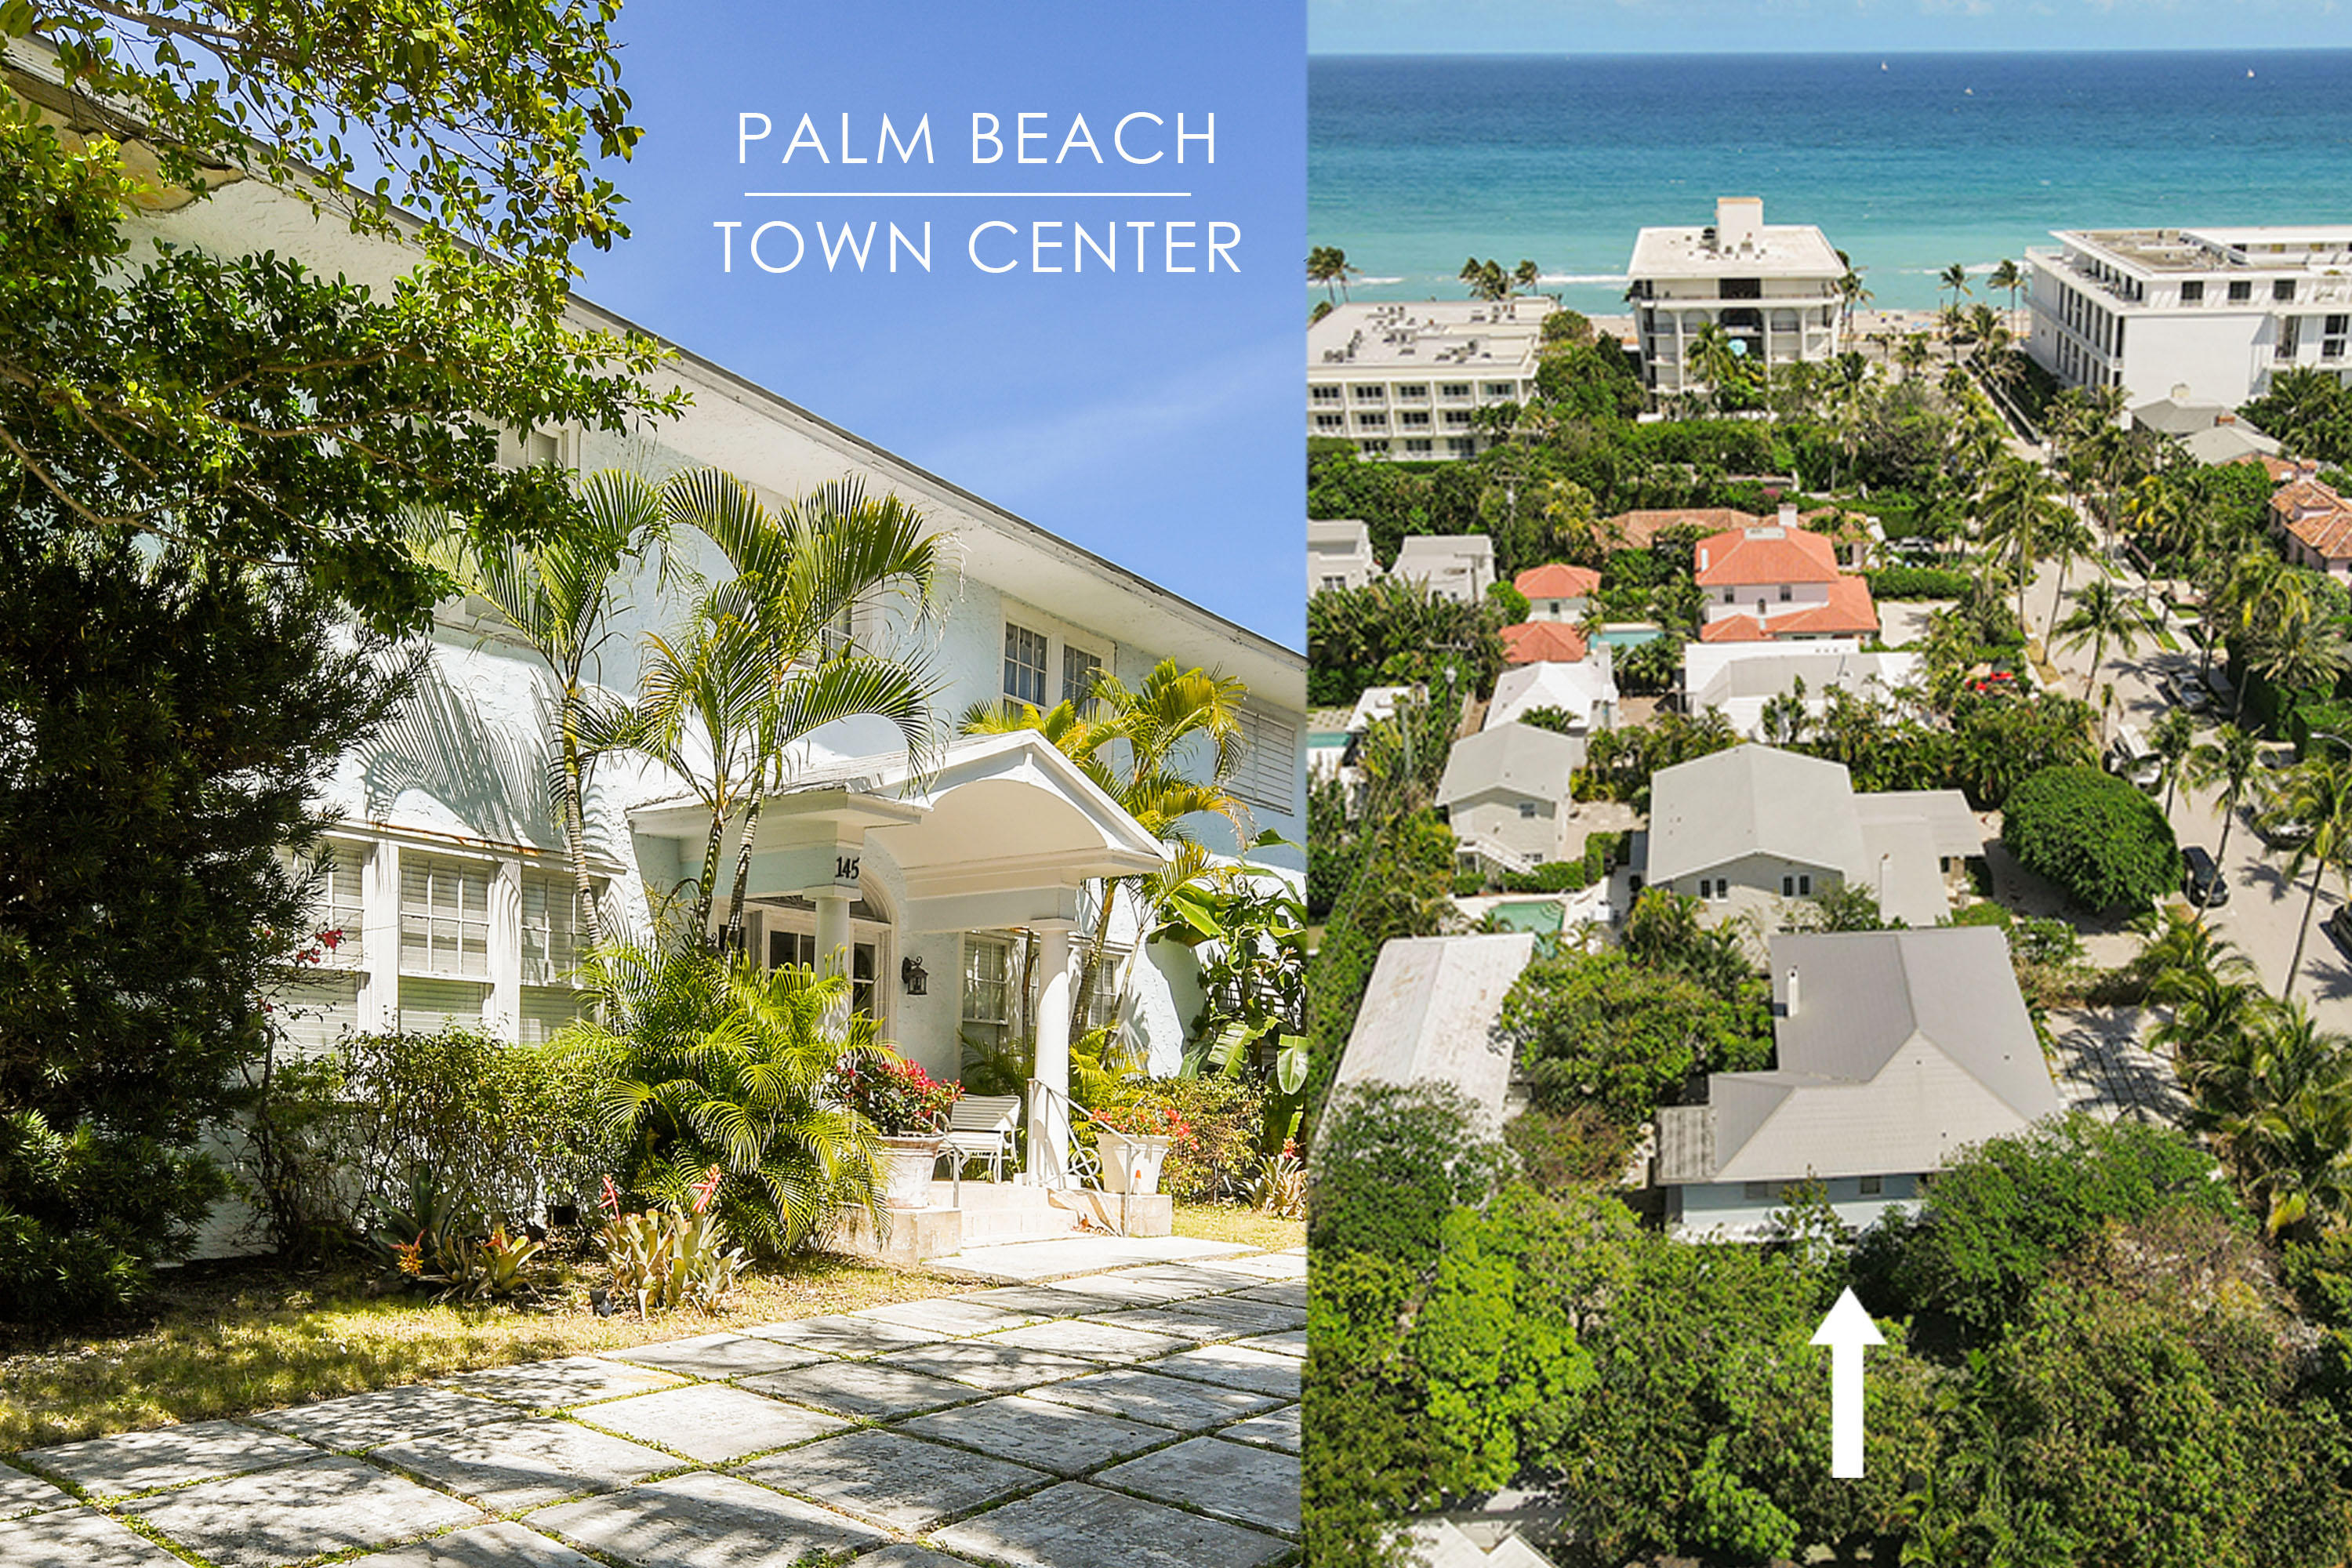 Palm Beach Estate, ideally located in the center of town on the first block from the beach, only six properties west of the Atlantic Ocean! Beautifully situated in the heart of exclusive Palm Beach, steps to the beach, Worth Avenue, world-renowned art galleries, shops, restaurants, hotels, post office and Town Hall.  Own this magnificent property and be a part of Palm Beach's adored culture, lifestyle, and society.  This vast, quarter-acre lot of 11,247 sqft includes a private, lovely, landscaped garden with mature mango trees and a huge parking area and a wide circular driveway.The main house remains mostly in its original state, preserving her 1920s charm. The property may be restored to her original glory or build your new dream mansion tailored to your specifications. The main house provides 3,278 sqft, while the guest house offers 2,193 sqft. The compound provides a total of 5,471 sqft and two floors of charming Palm Beach-style living space.